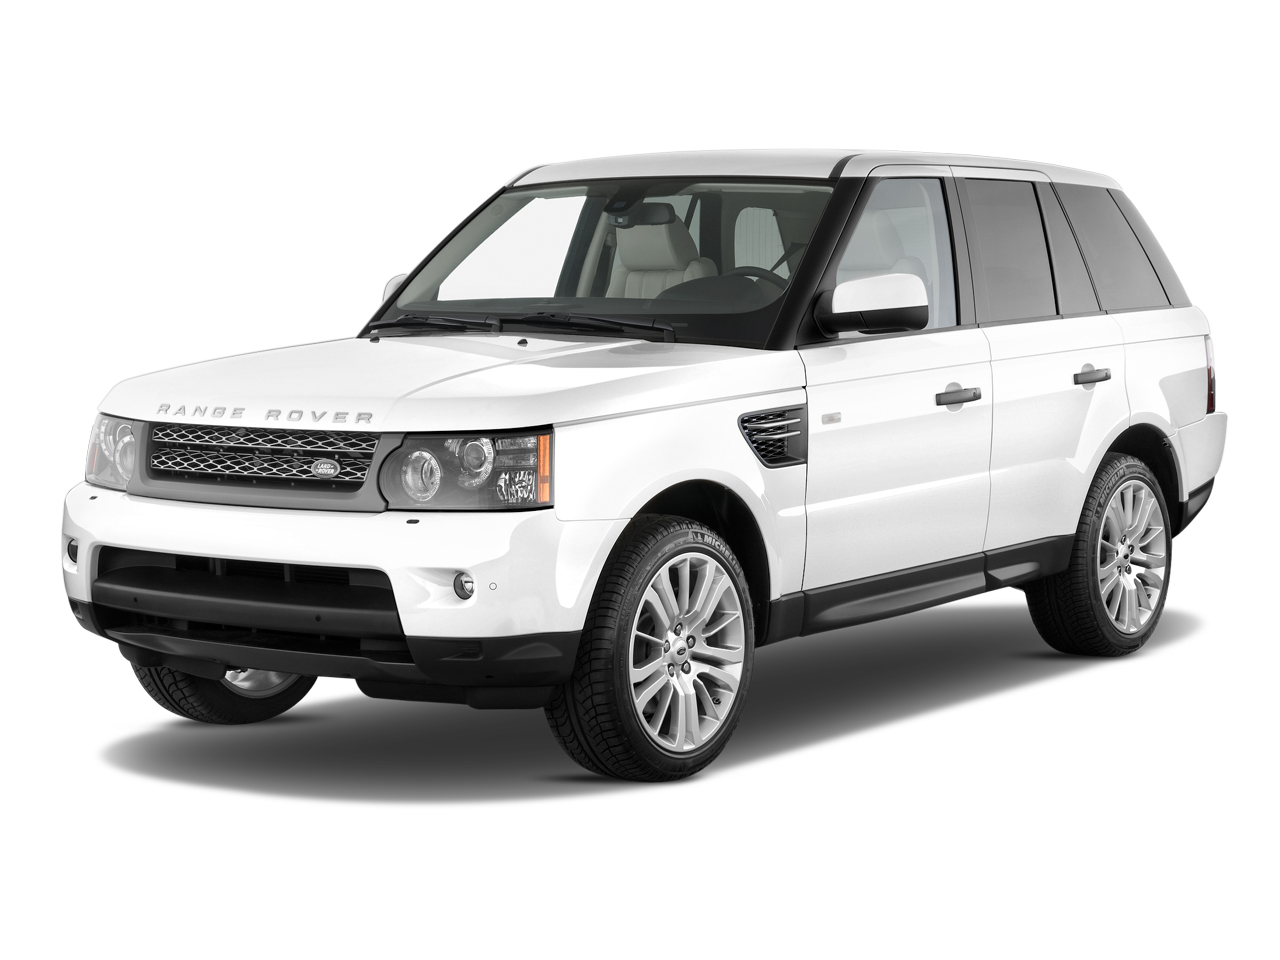 2010 Range Rover Sport All New Technology